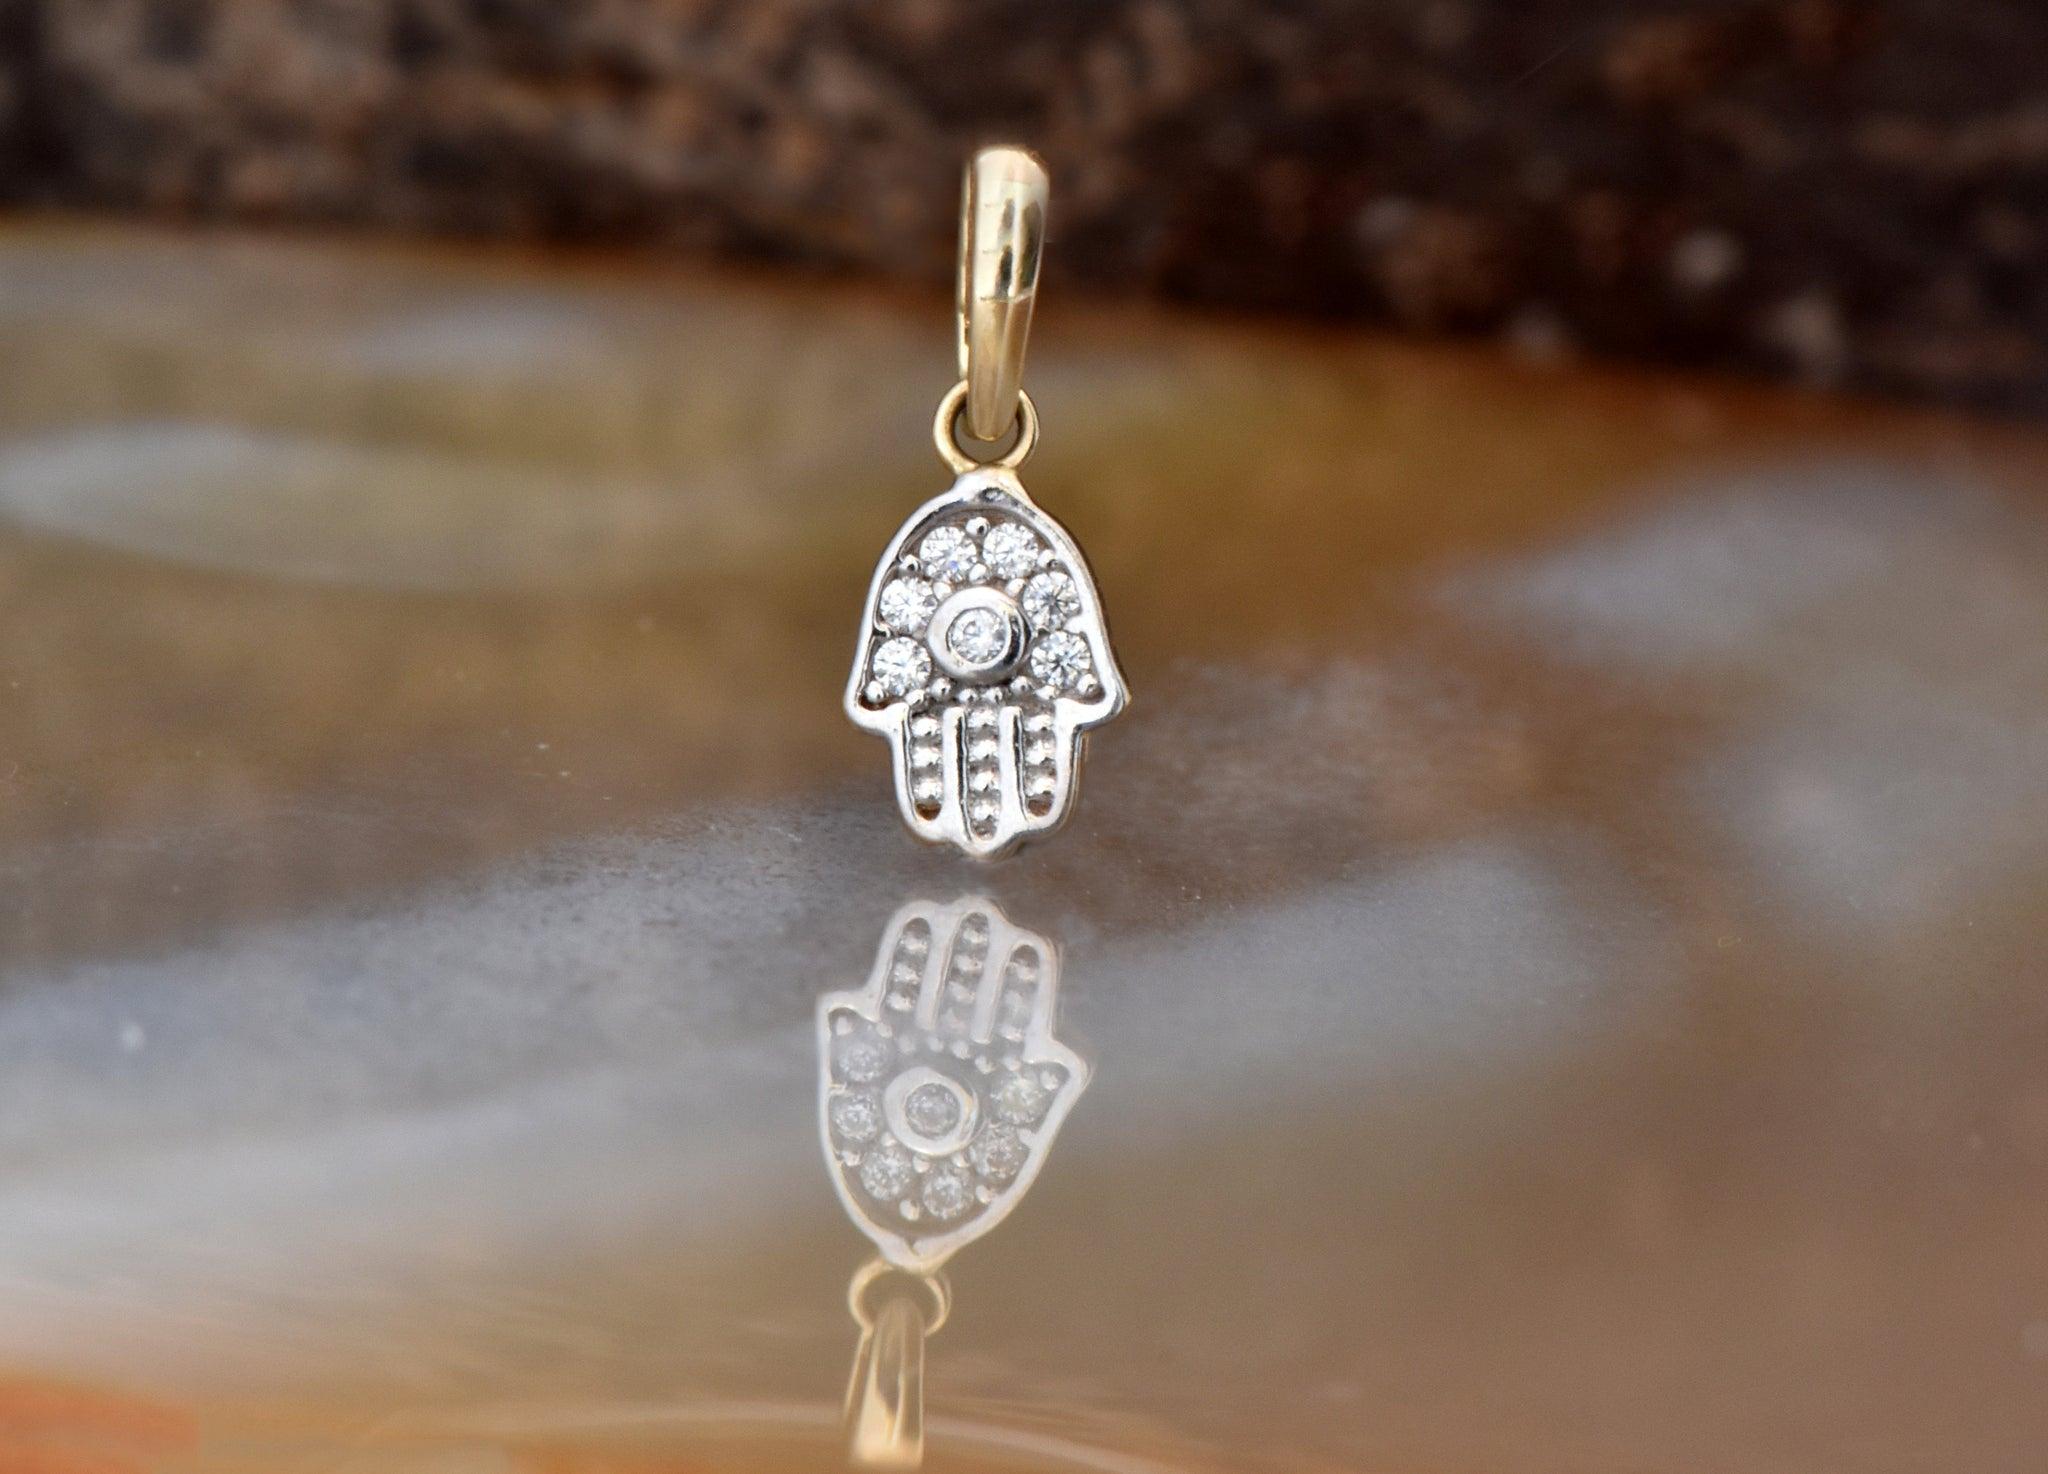 Hamsa Hand Necklace-Protection Necklace-Minimalist Jewelry-Graduation gift-Bat mitzvah gift - SevenCarat